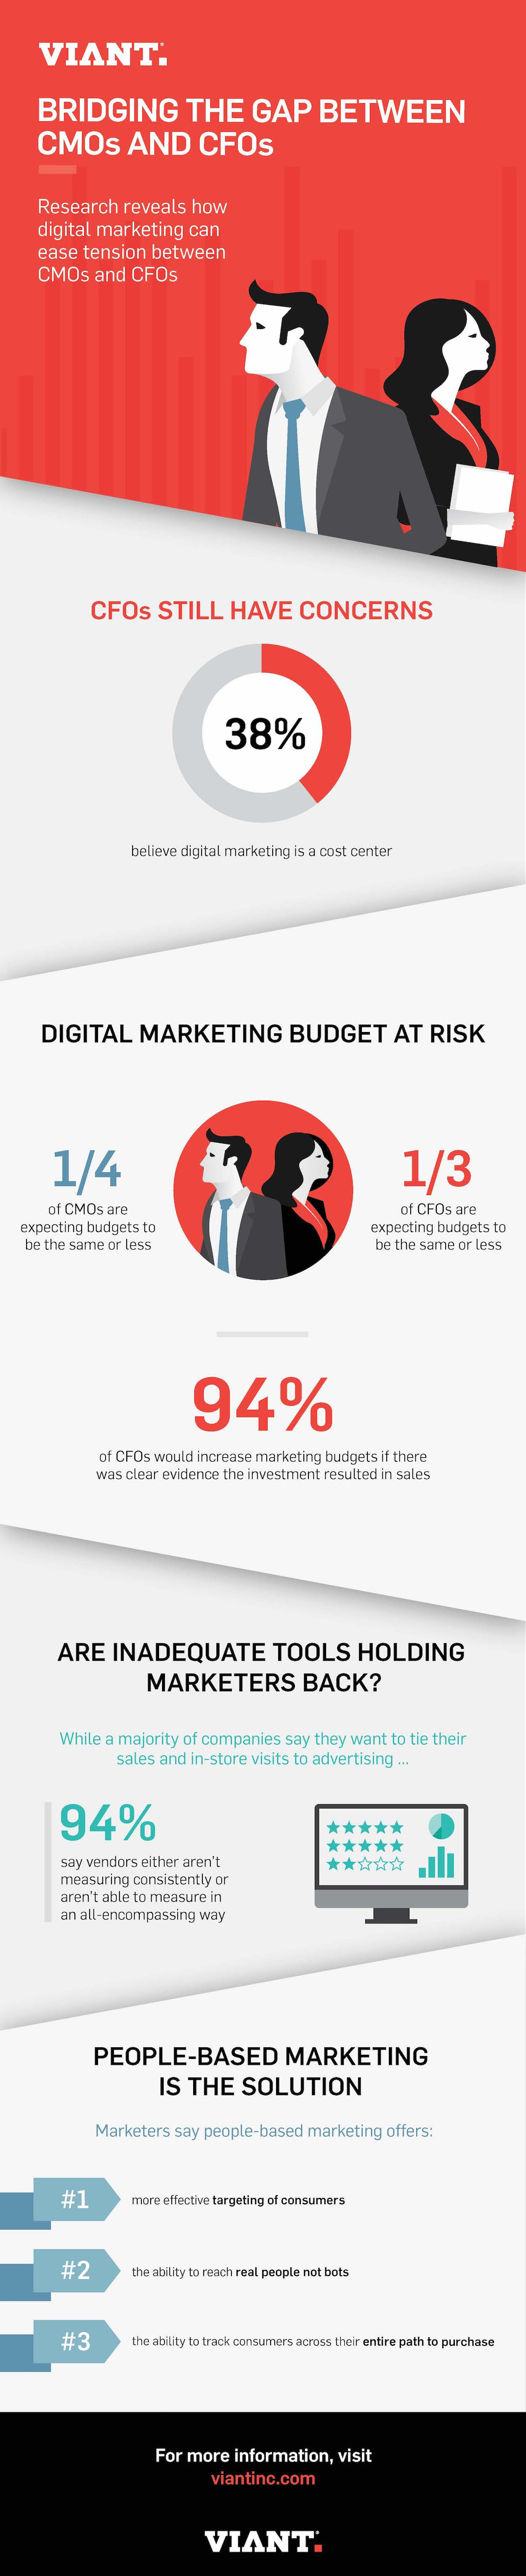 How Digital Marketing Can Ease Tension Between CMOs and CFOs